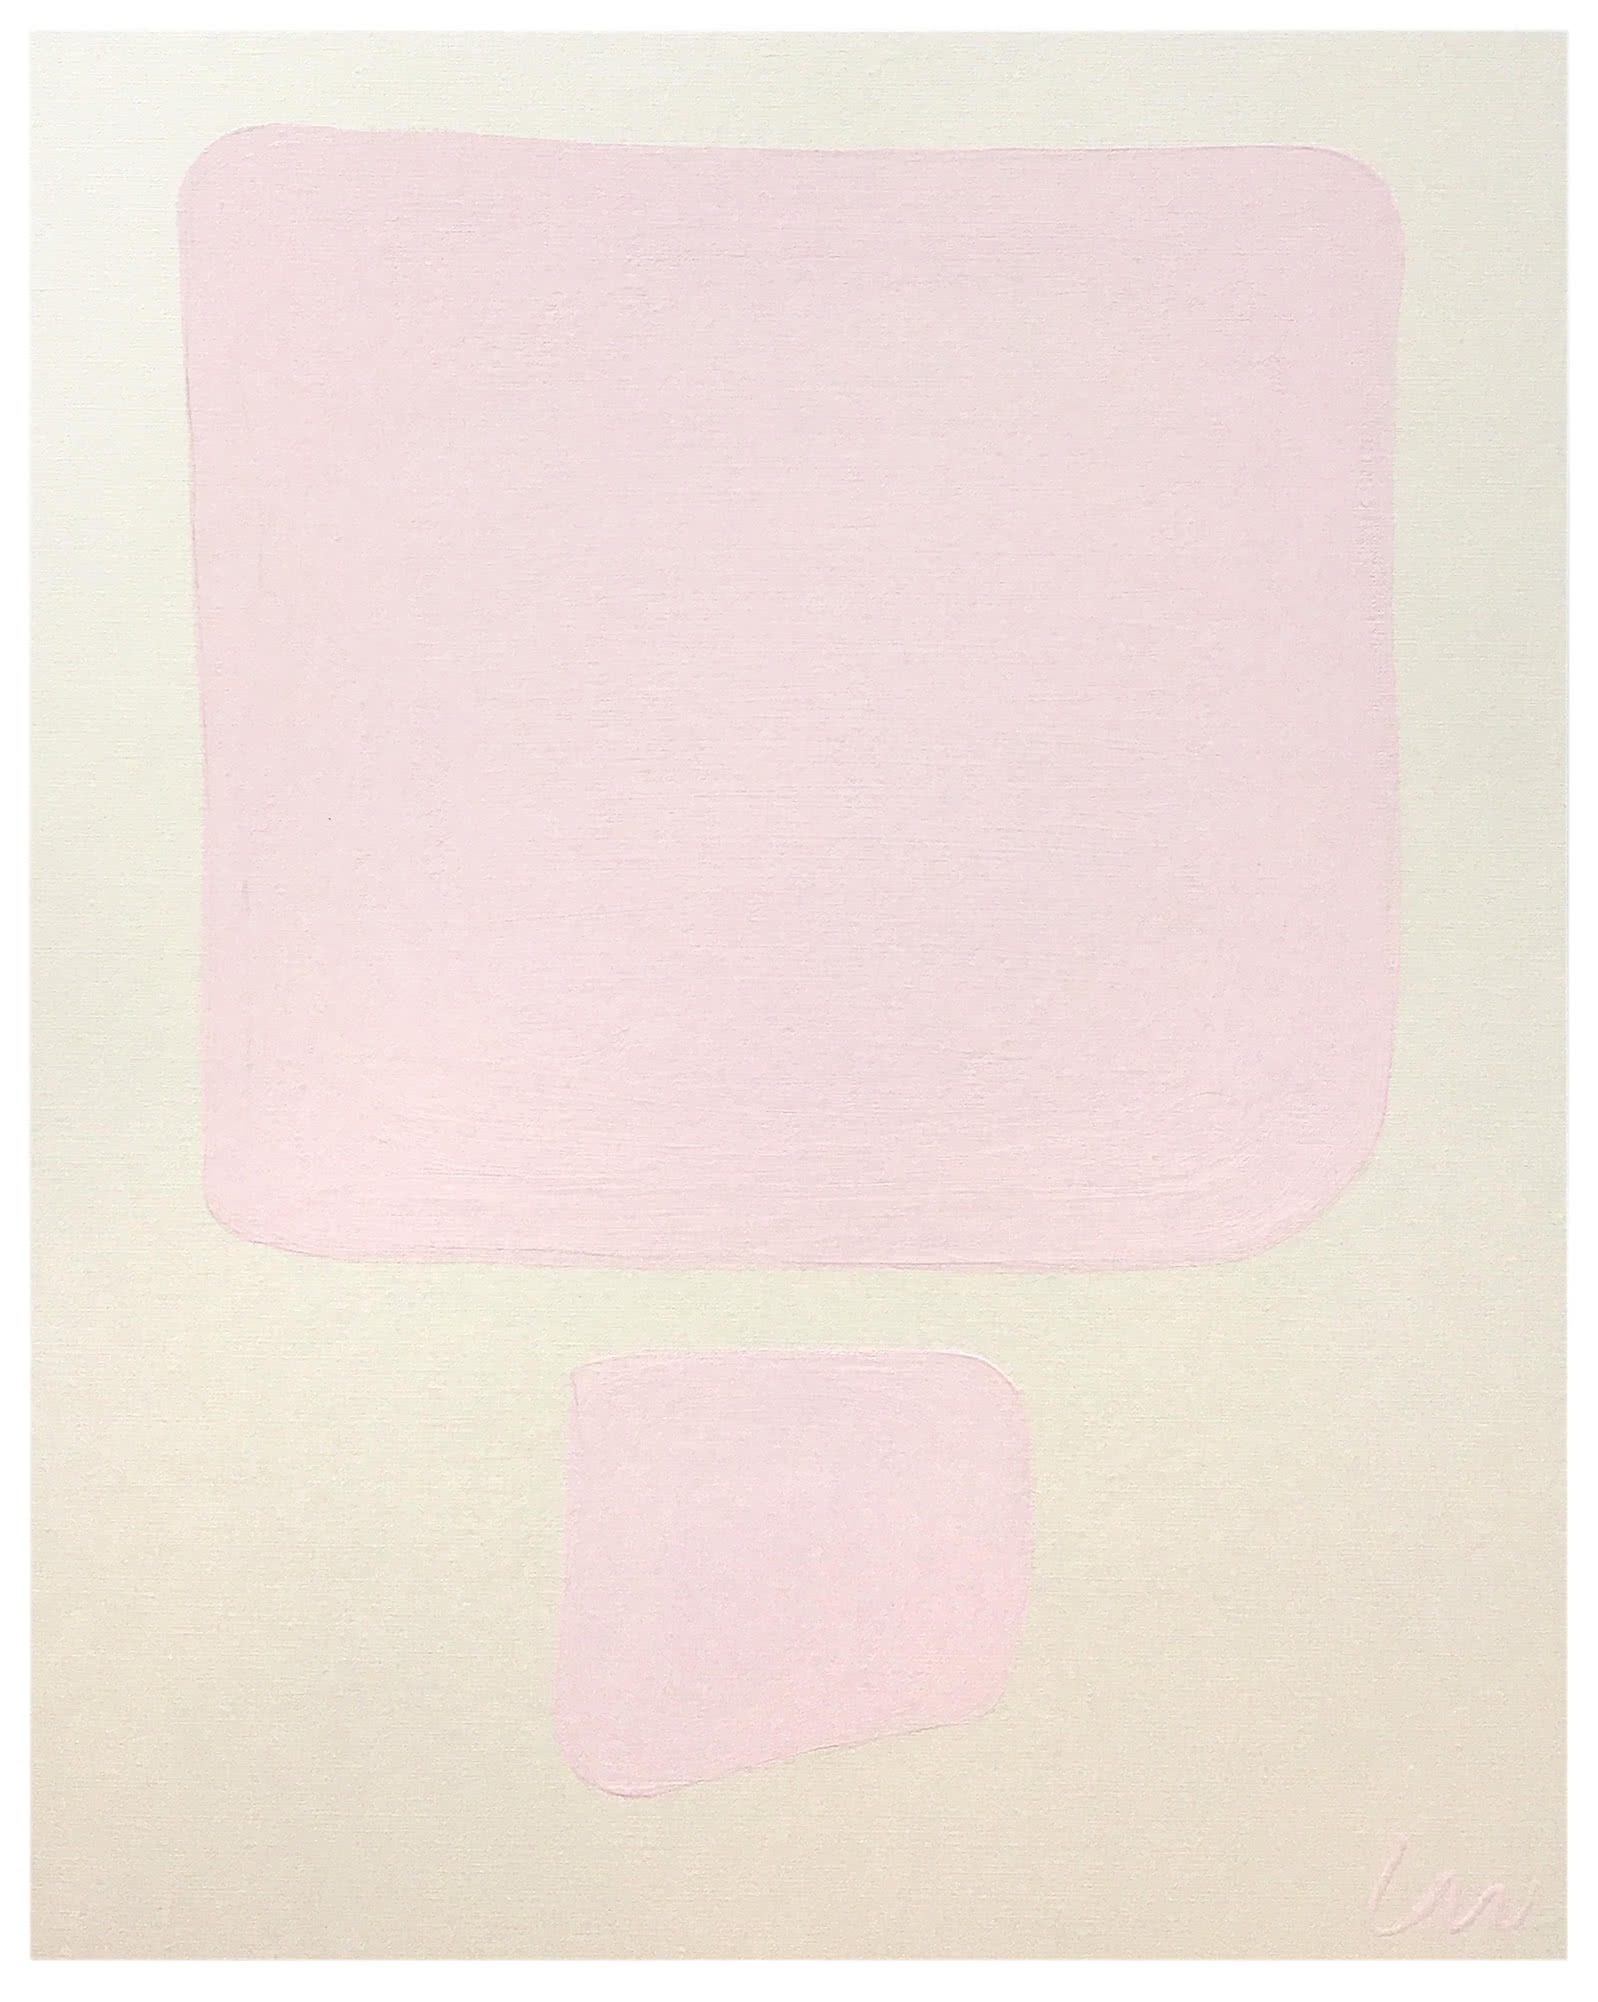 """Pink Imperfection 1"" by Whitney Stoddard,"